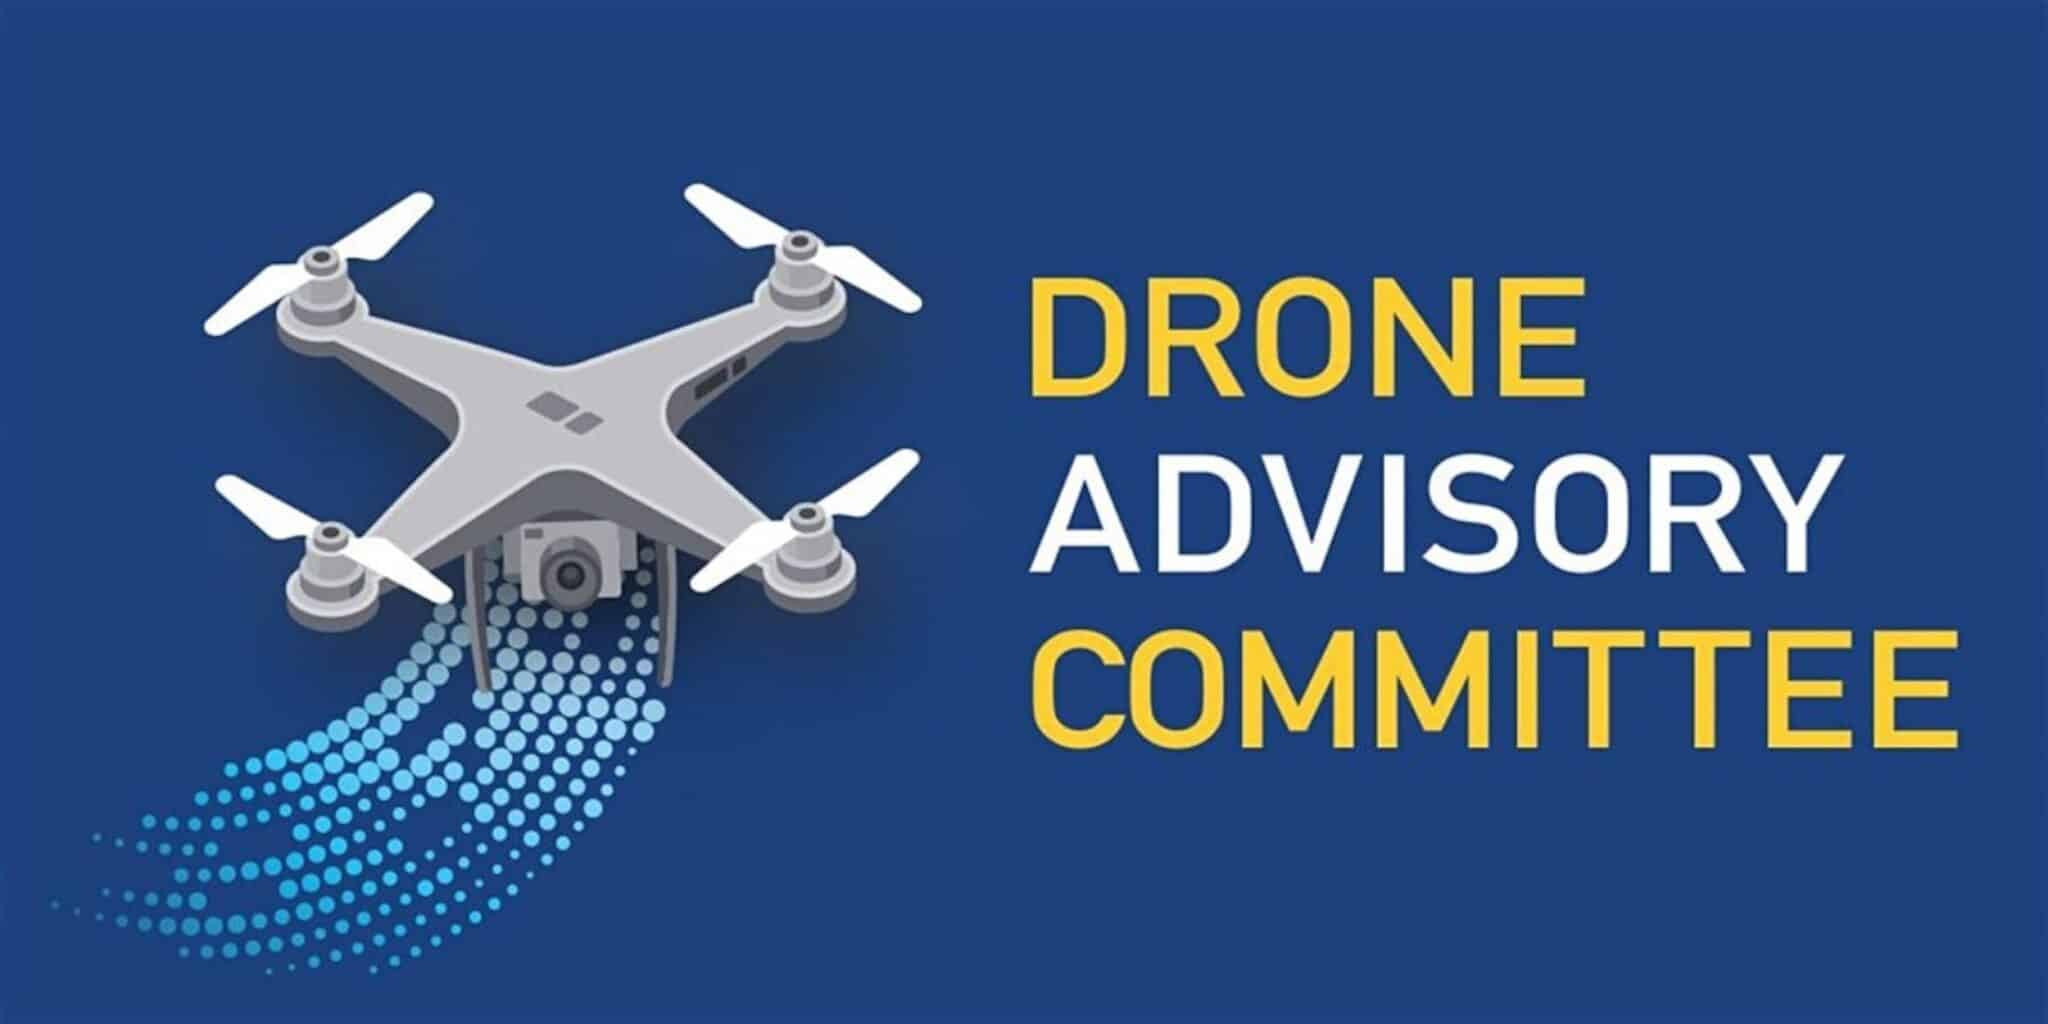 Drone Advisory Committee takes place in Washington, D.C. on February 27th, 2020.